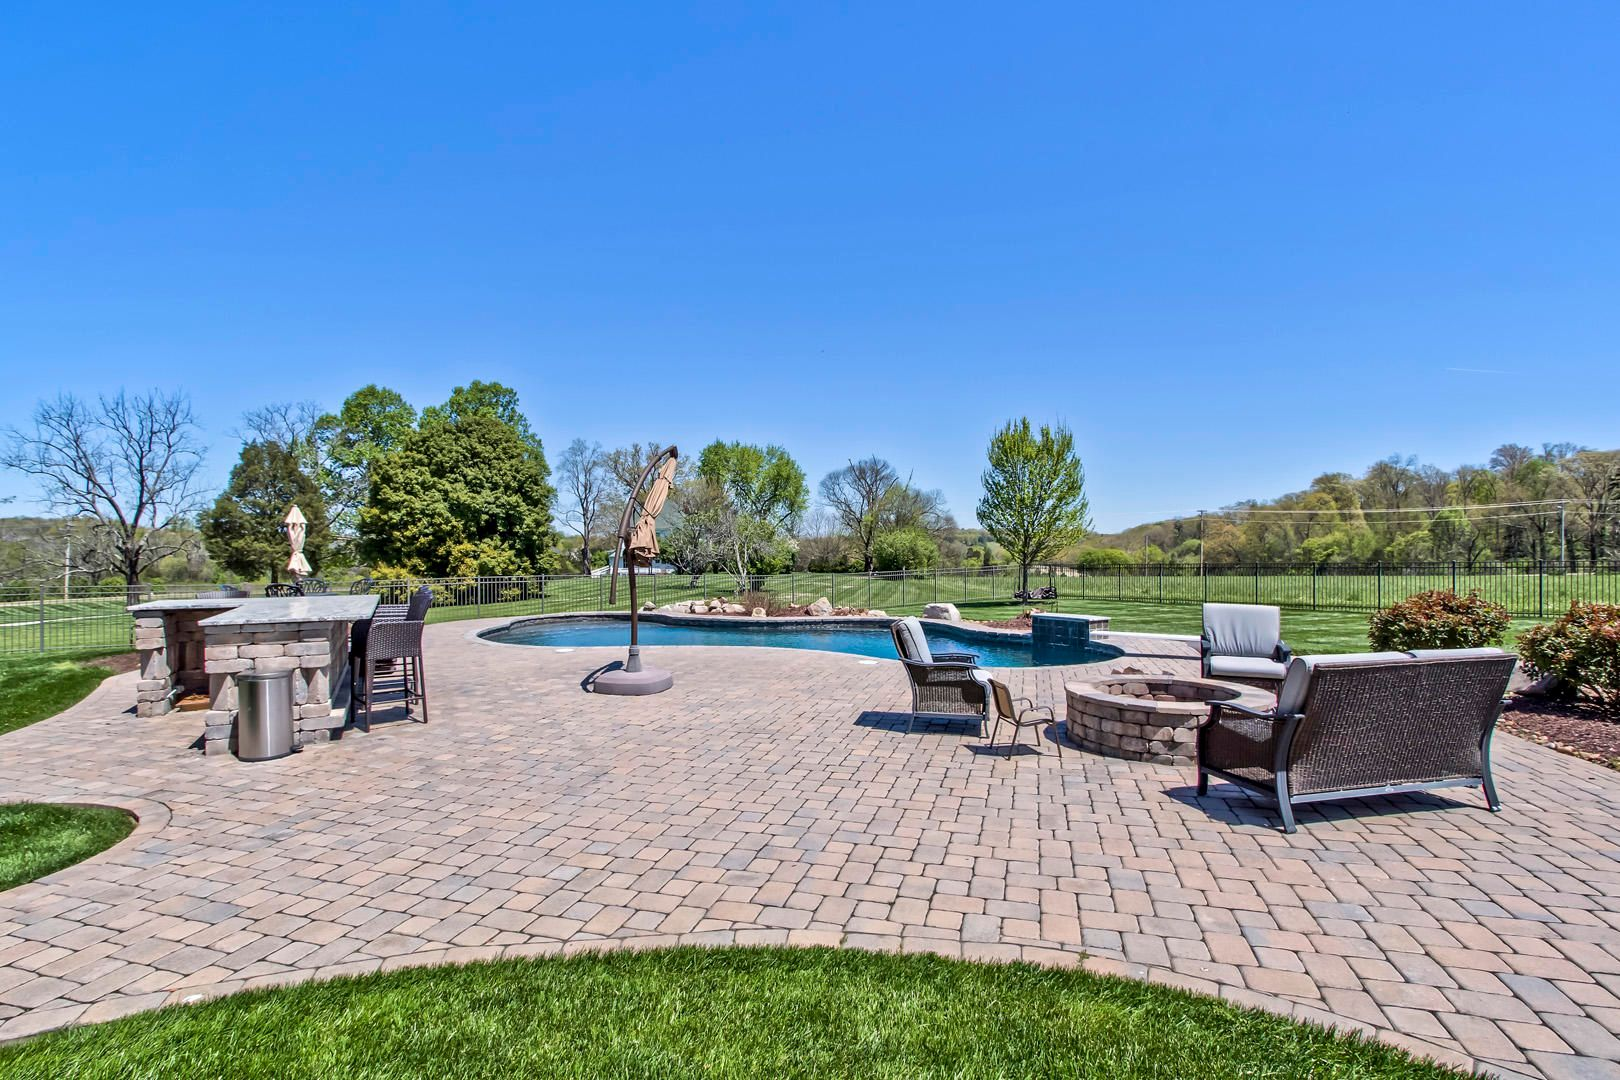 35_BridgemoreBlvd_12520_Patio-Pool01